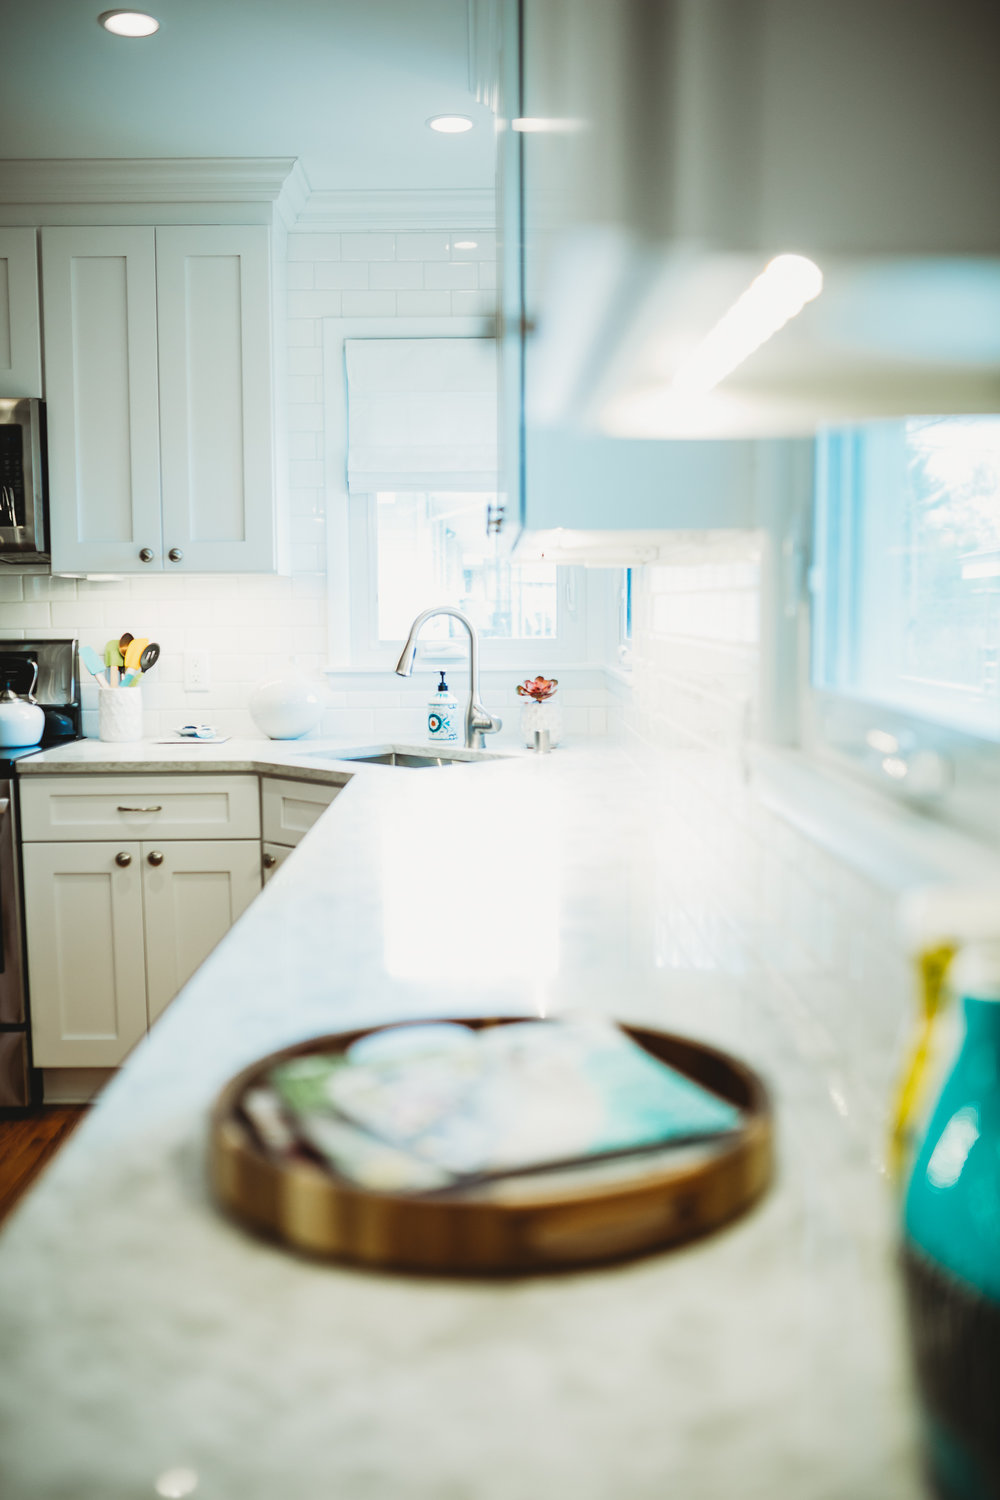 A simple guide to selecting the best lighting layout for your kitchen. Photography by Lauren Lutterman Photography https://www.photosbylaurenl.com